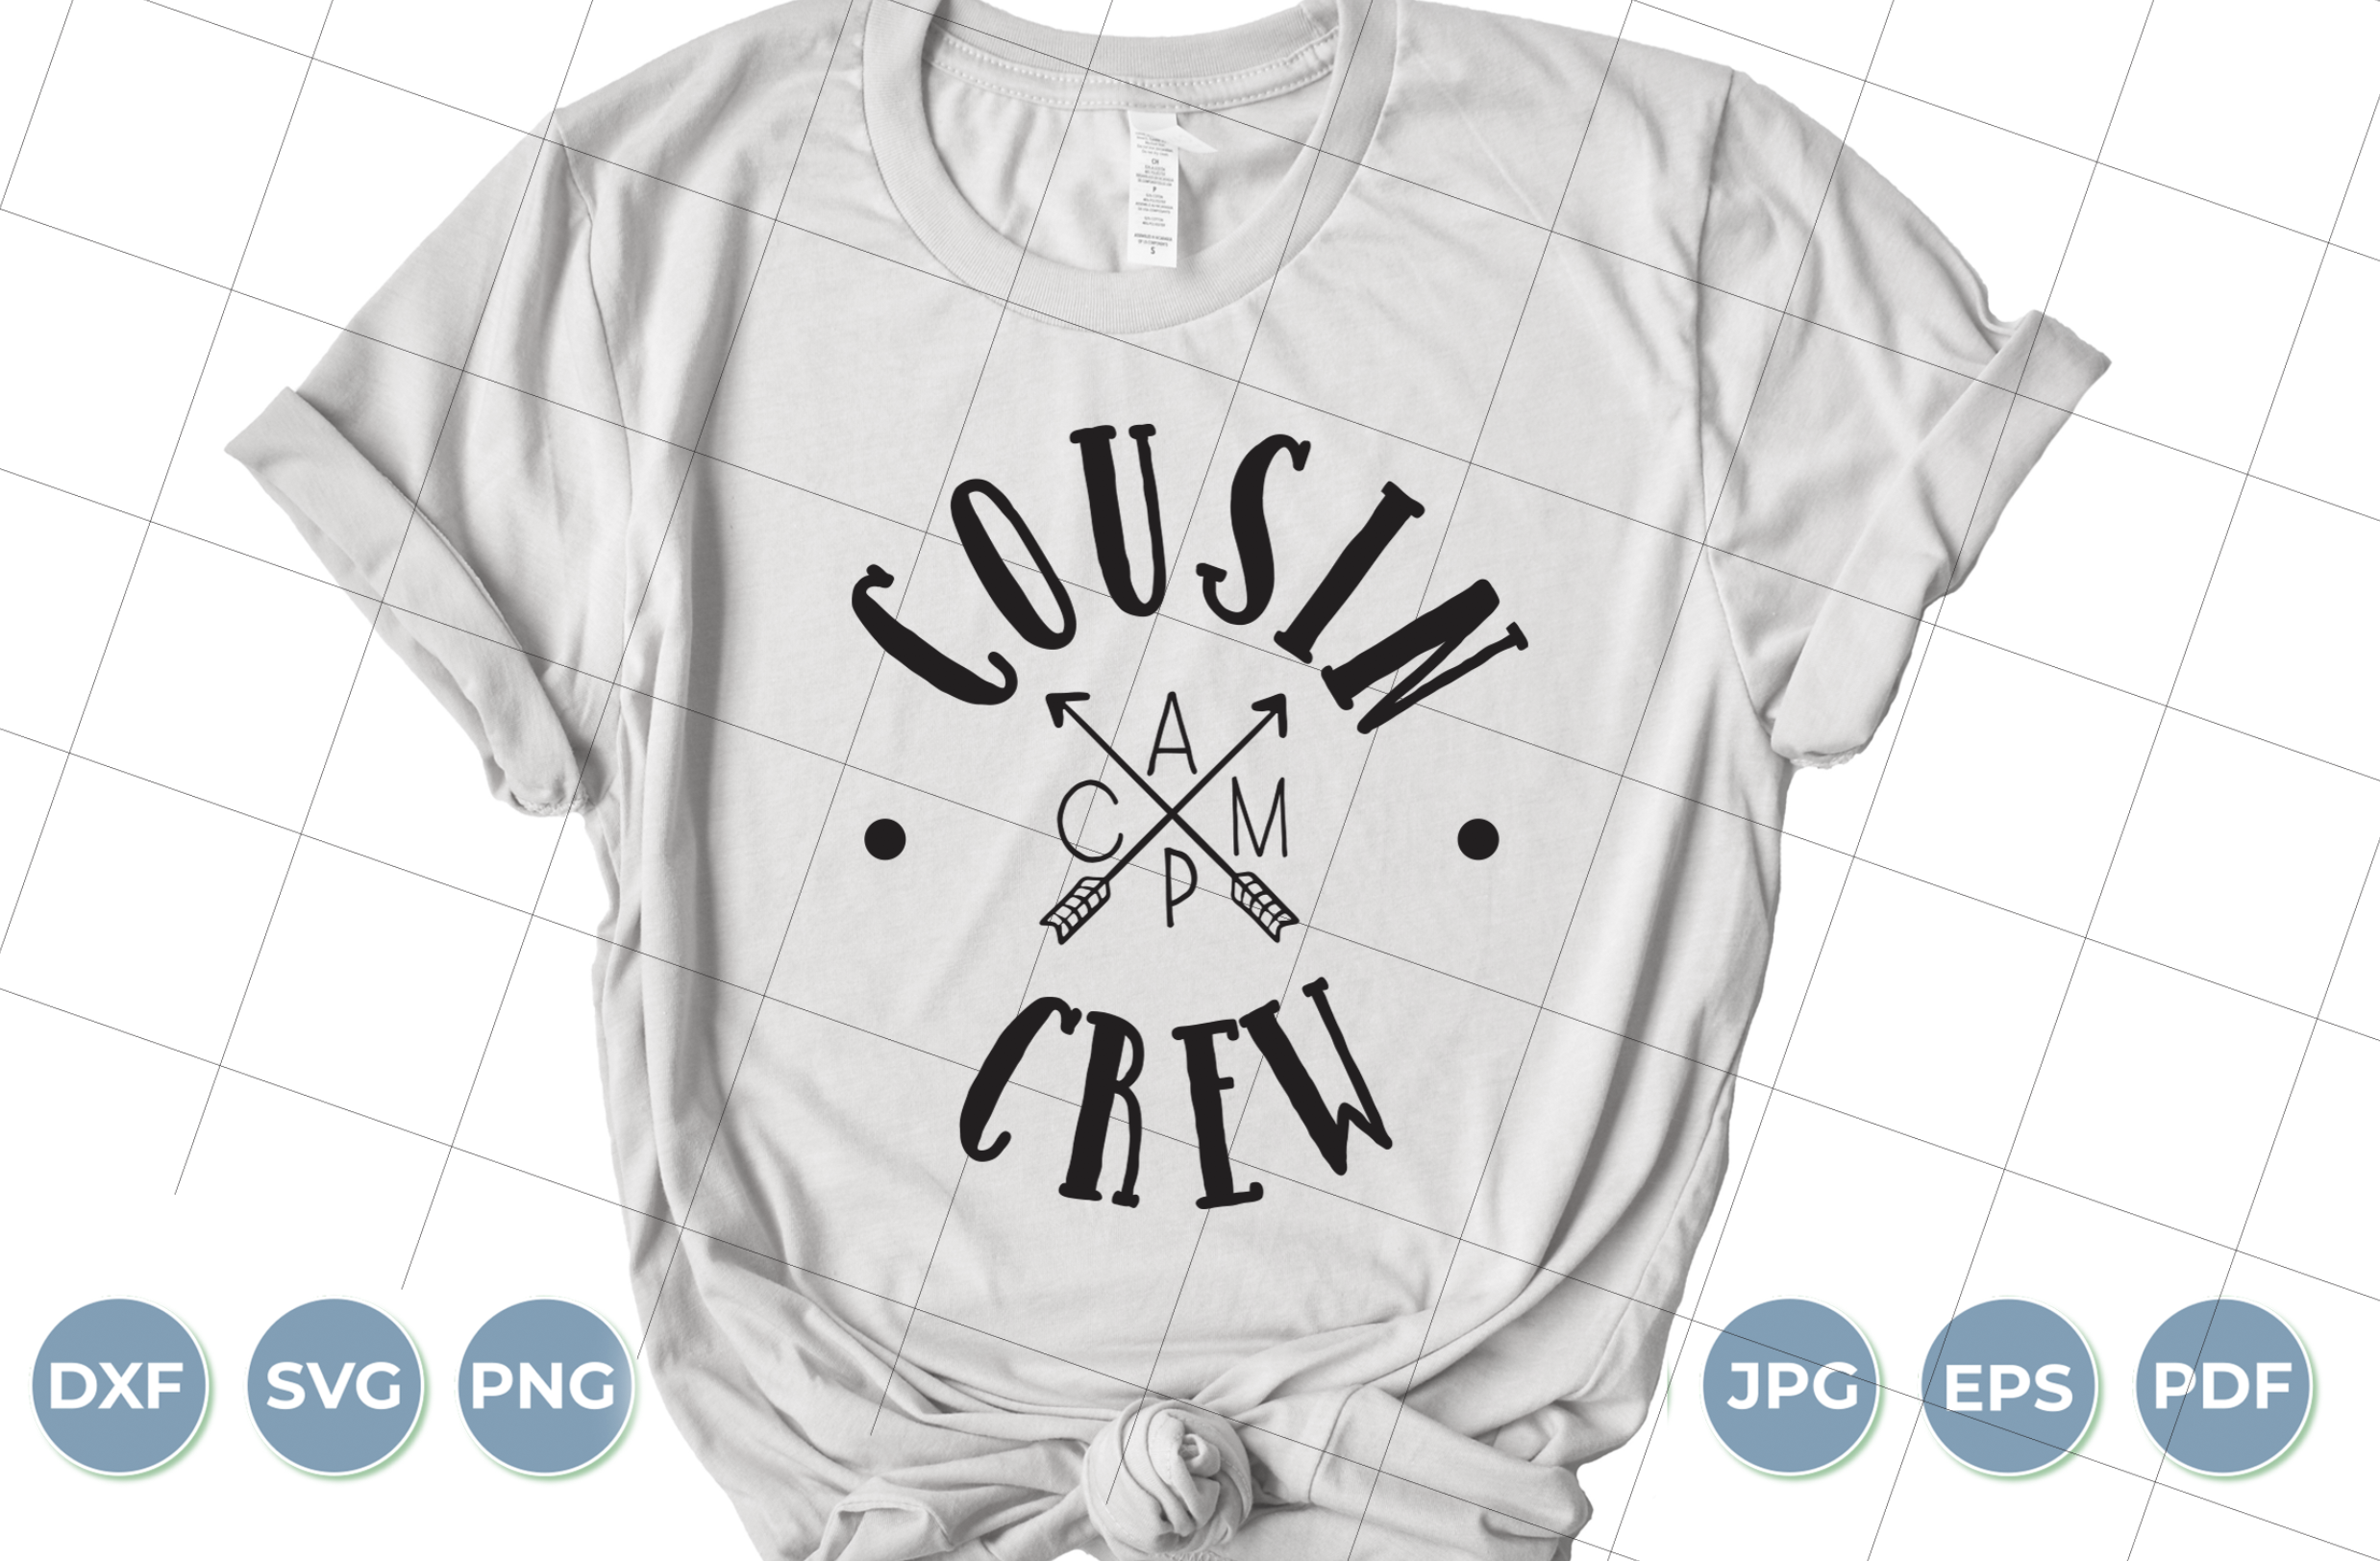 Download Free Cousin Crew Graphic By Luxedesignartetsy Creative Fabrica for Cricut Explore, Silhouette and other cutting machines.